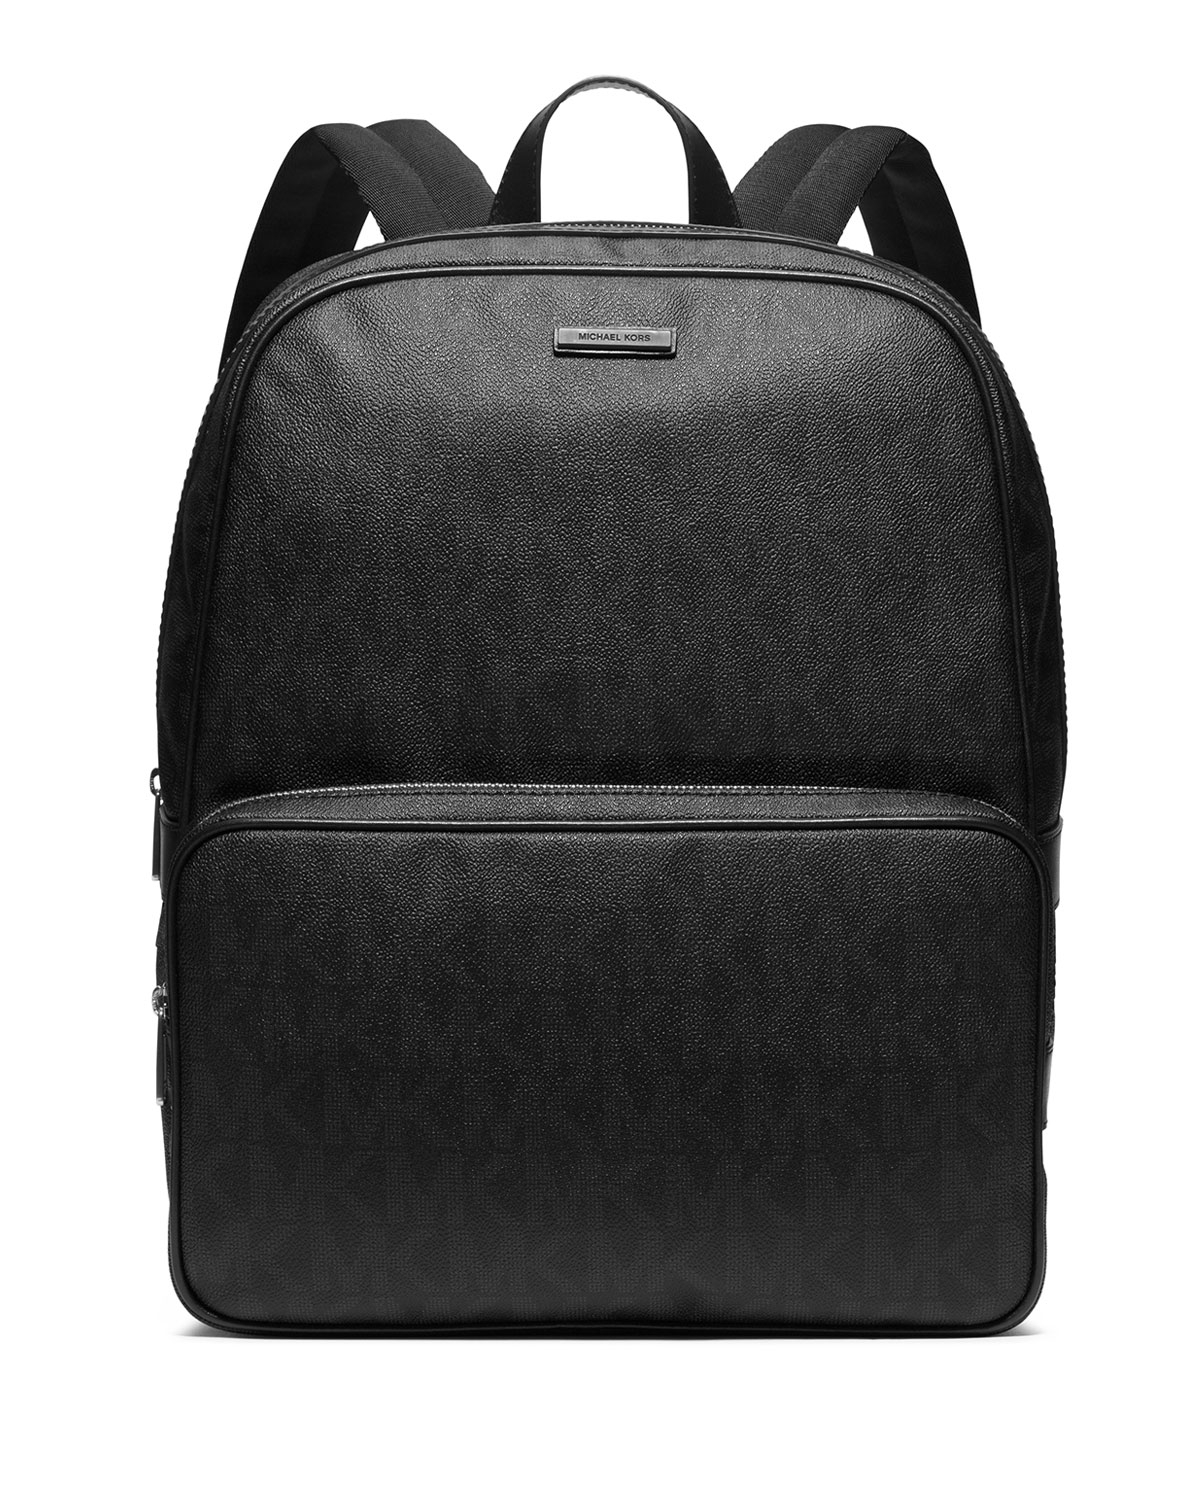 379f1d235d9ab ... real lyst michael kors logo print faux leather backpack in black for men  93cc7 8df18